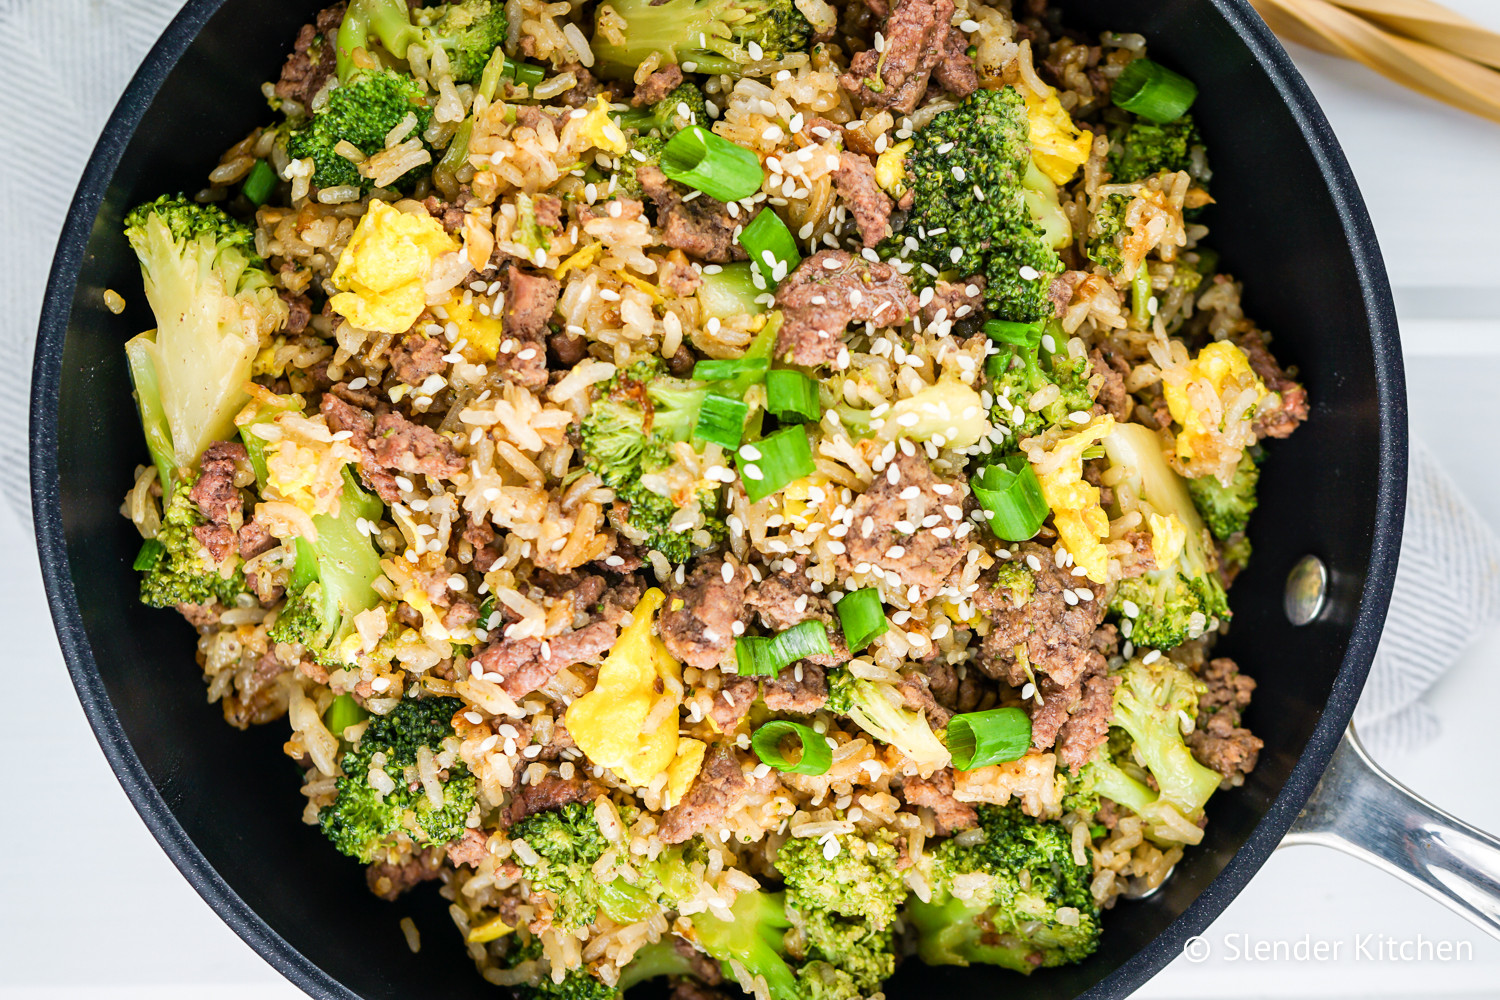 Ground Beef And Rice Recipes Healthy  Beef and Broccoli Fried Rice Slender Kitchen